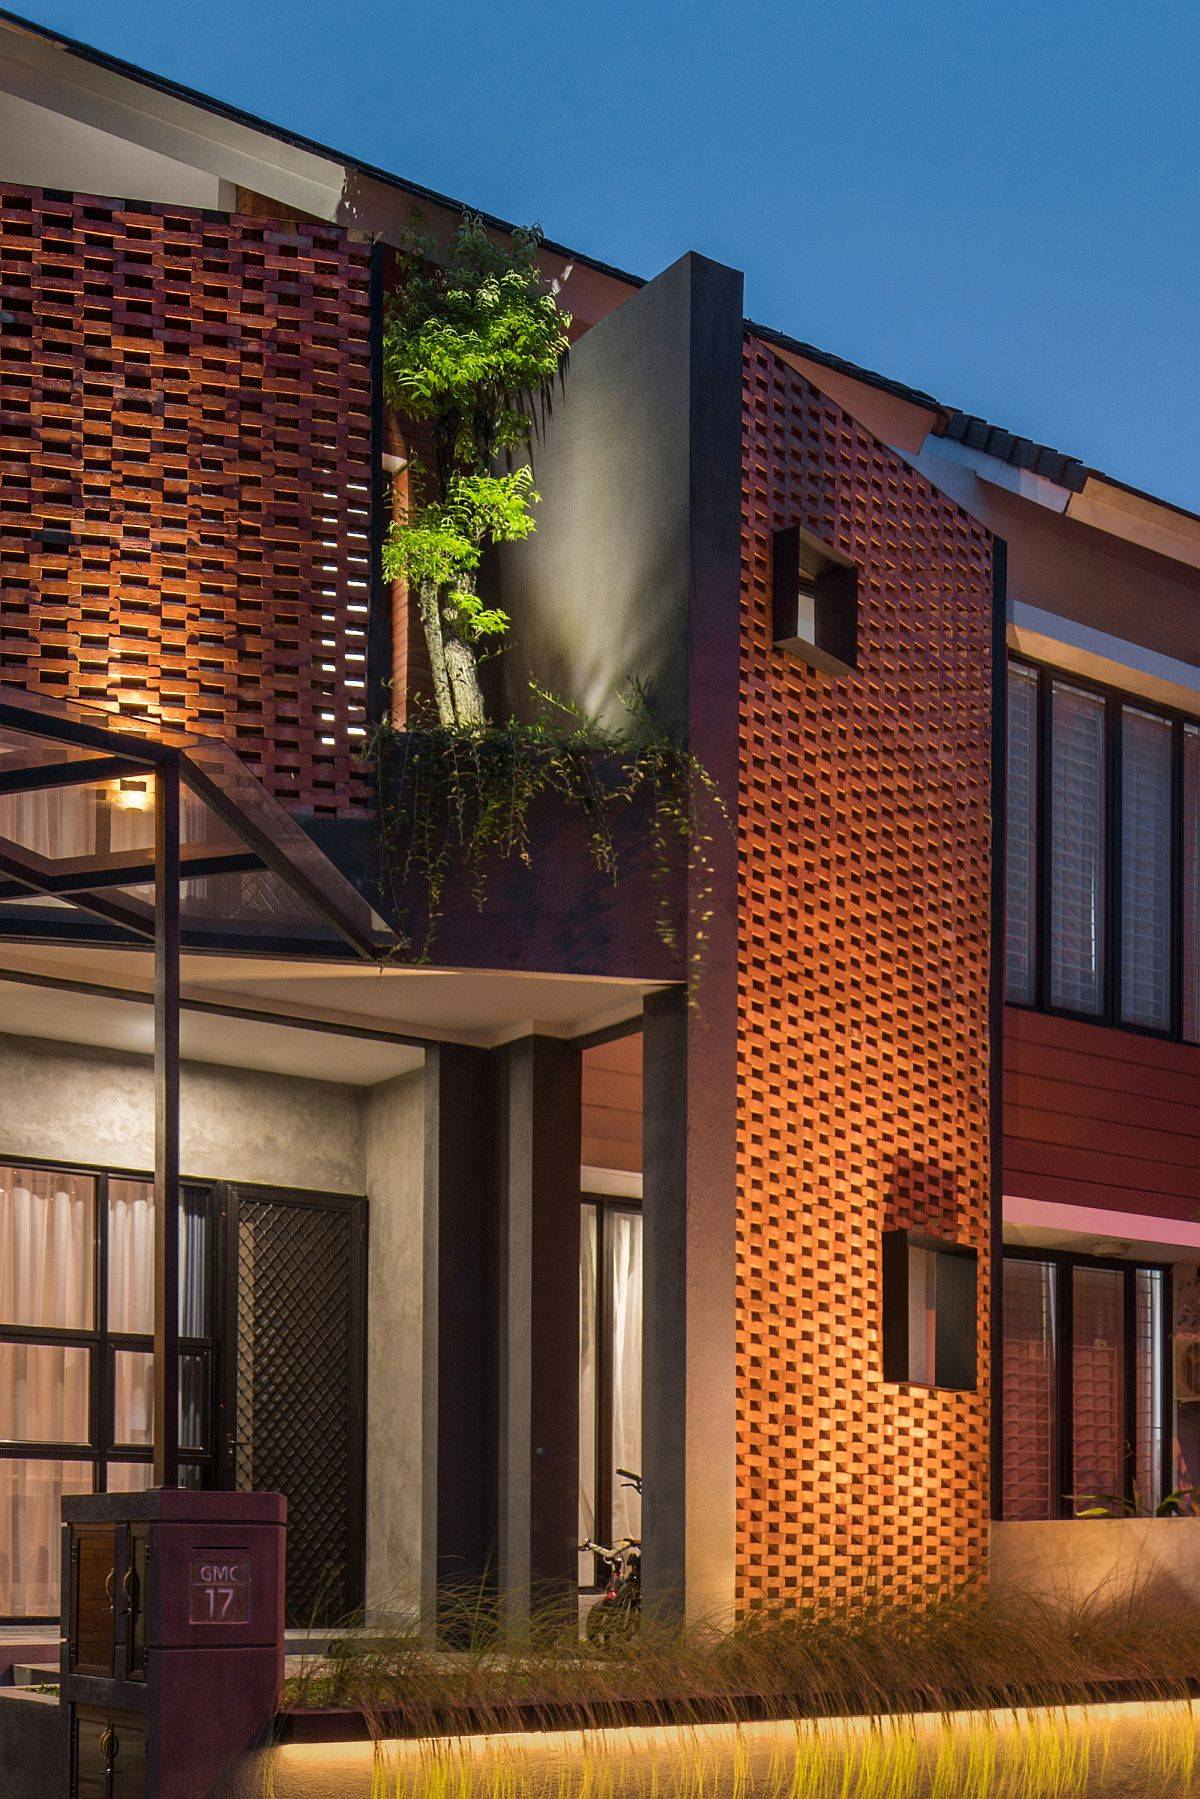 Gorgeously-lit-brick-facade-of-the-home-after-sunset-47899